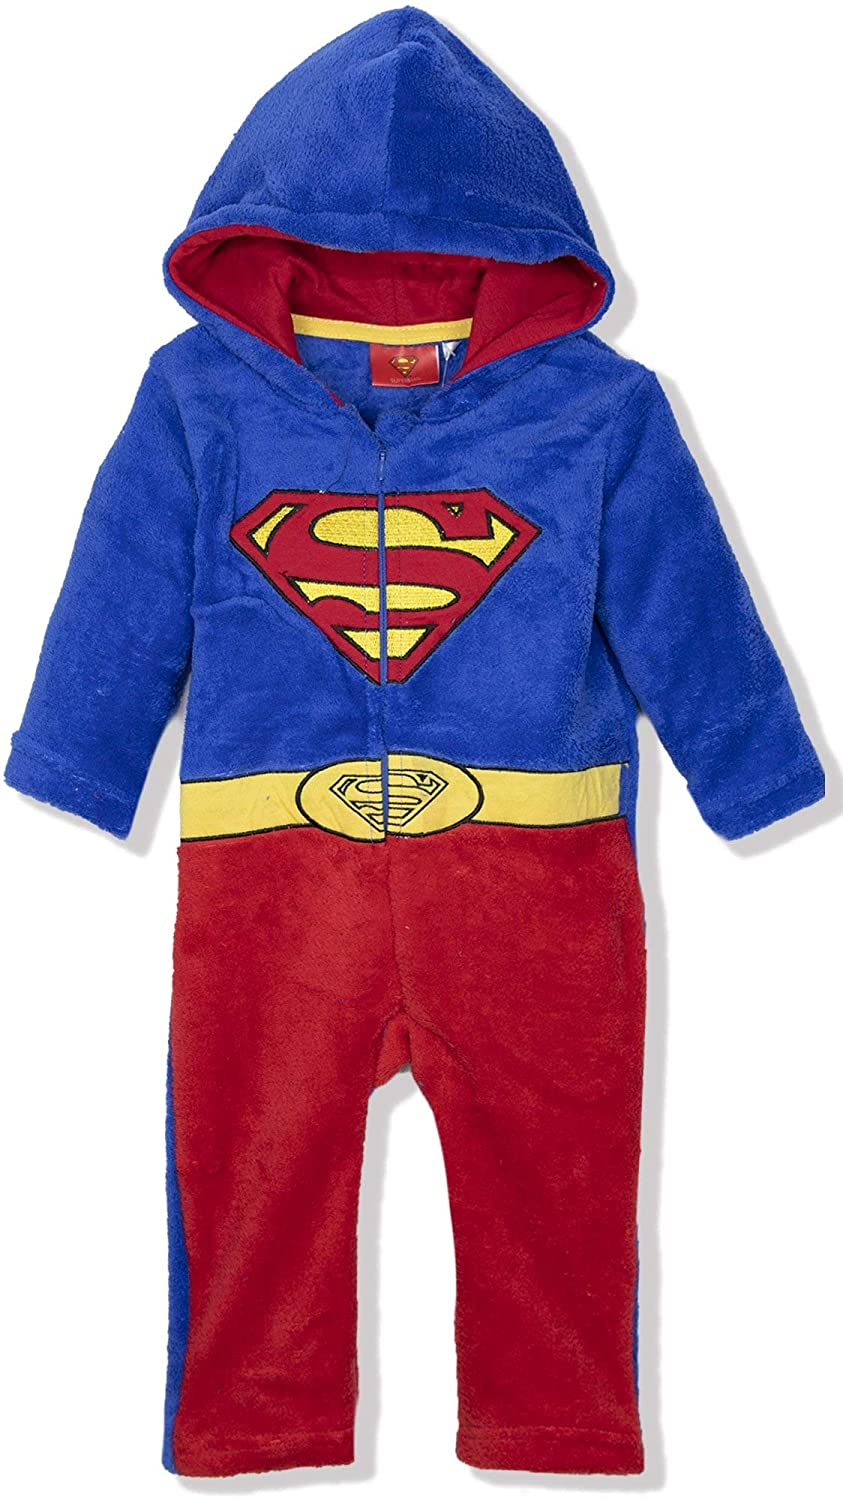 DC Comics Superman Batman Baby Toddlers Boys Onesie Jumpsuit Romper Warm Coral Fleece Pramsuit 9-36 Months